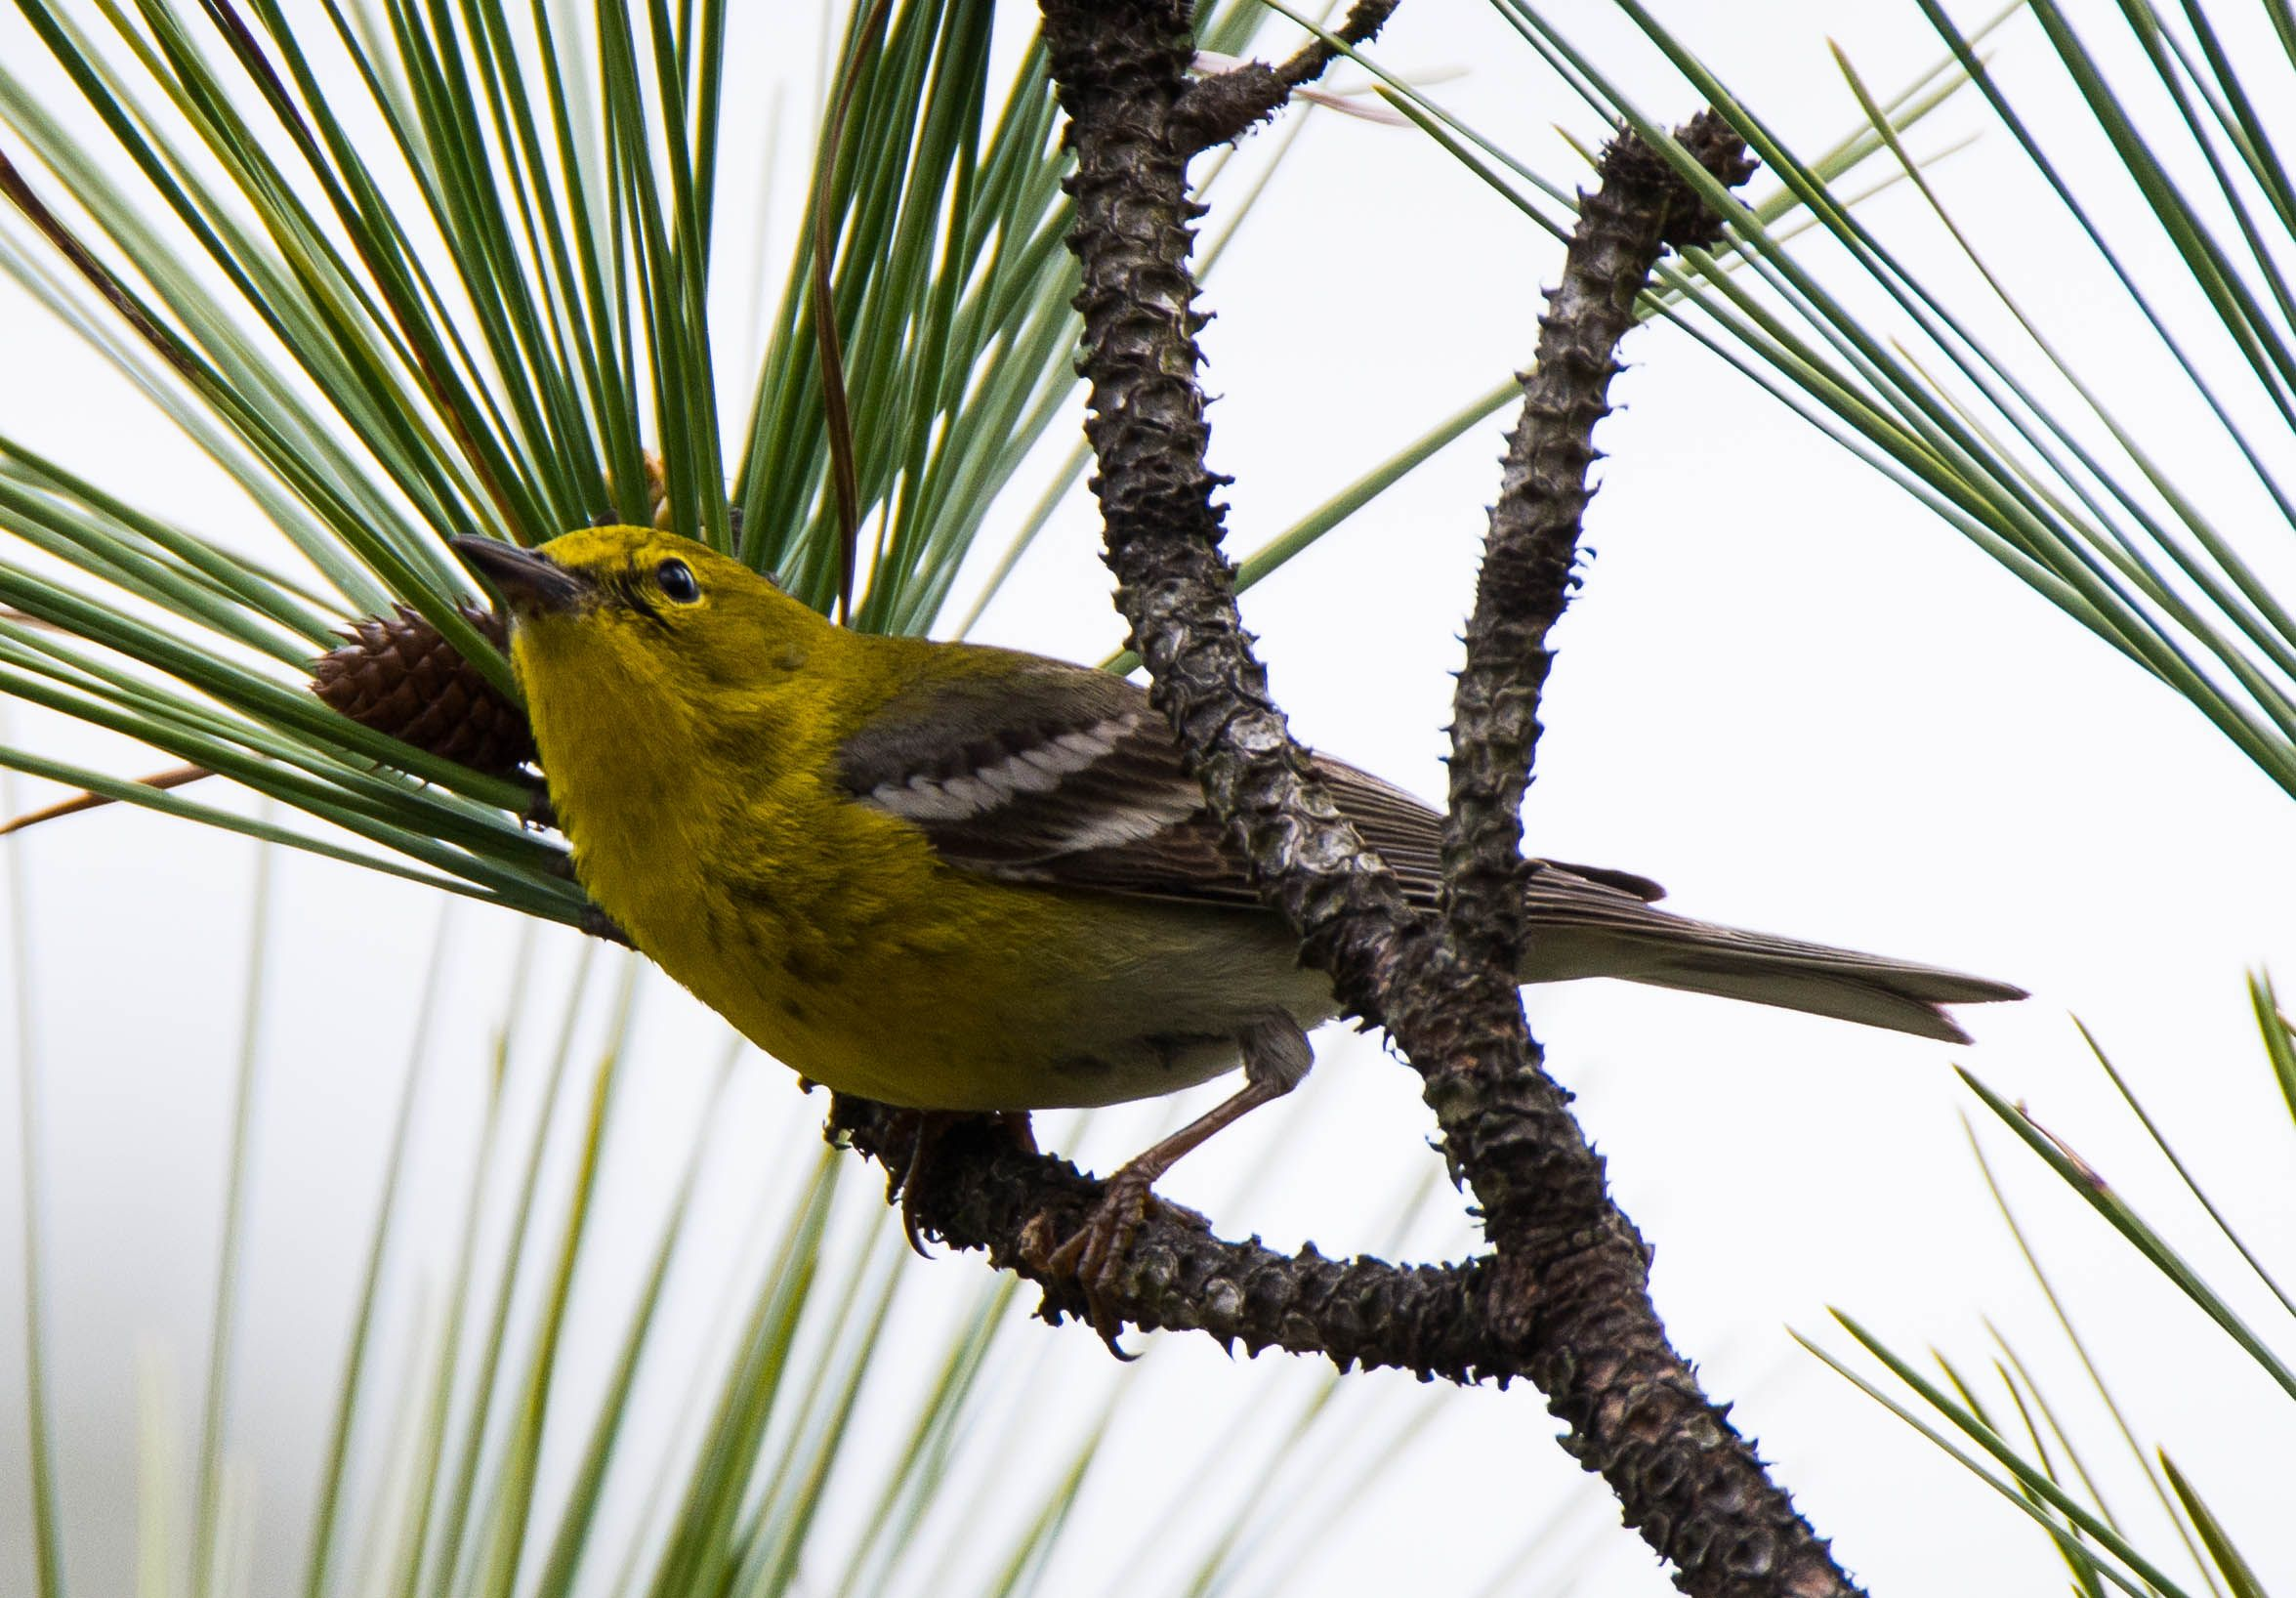 Pine Warbler: 26 March 2016, Belle Isle State Park, Lancaster, VA; 9.15 a.m., 55 degrees, mostly cloudy, slight breeze